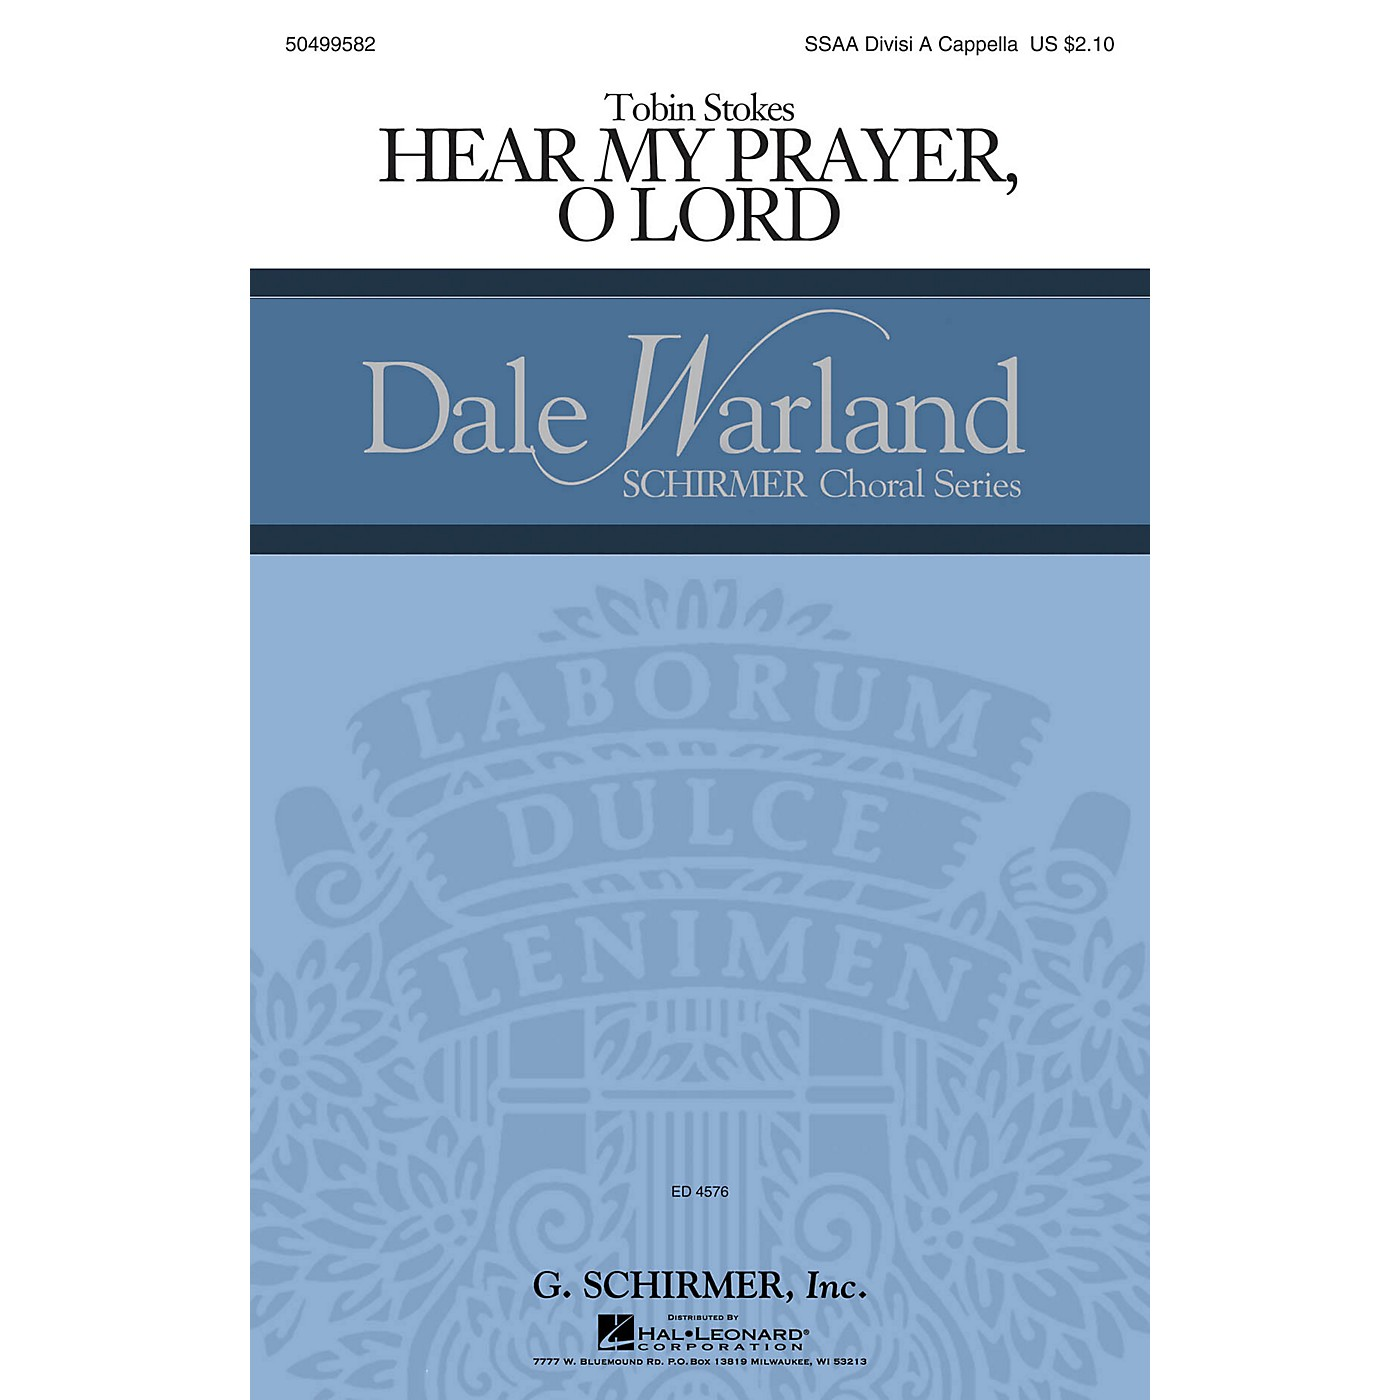 G. Schirmer Hear My Prayer, Oh Lord (Dale Warland Choral Series) SSA Div A Cappella composed by Tobin Stokes thumbnail